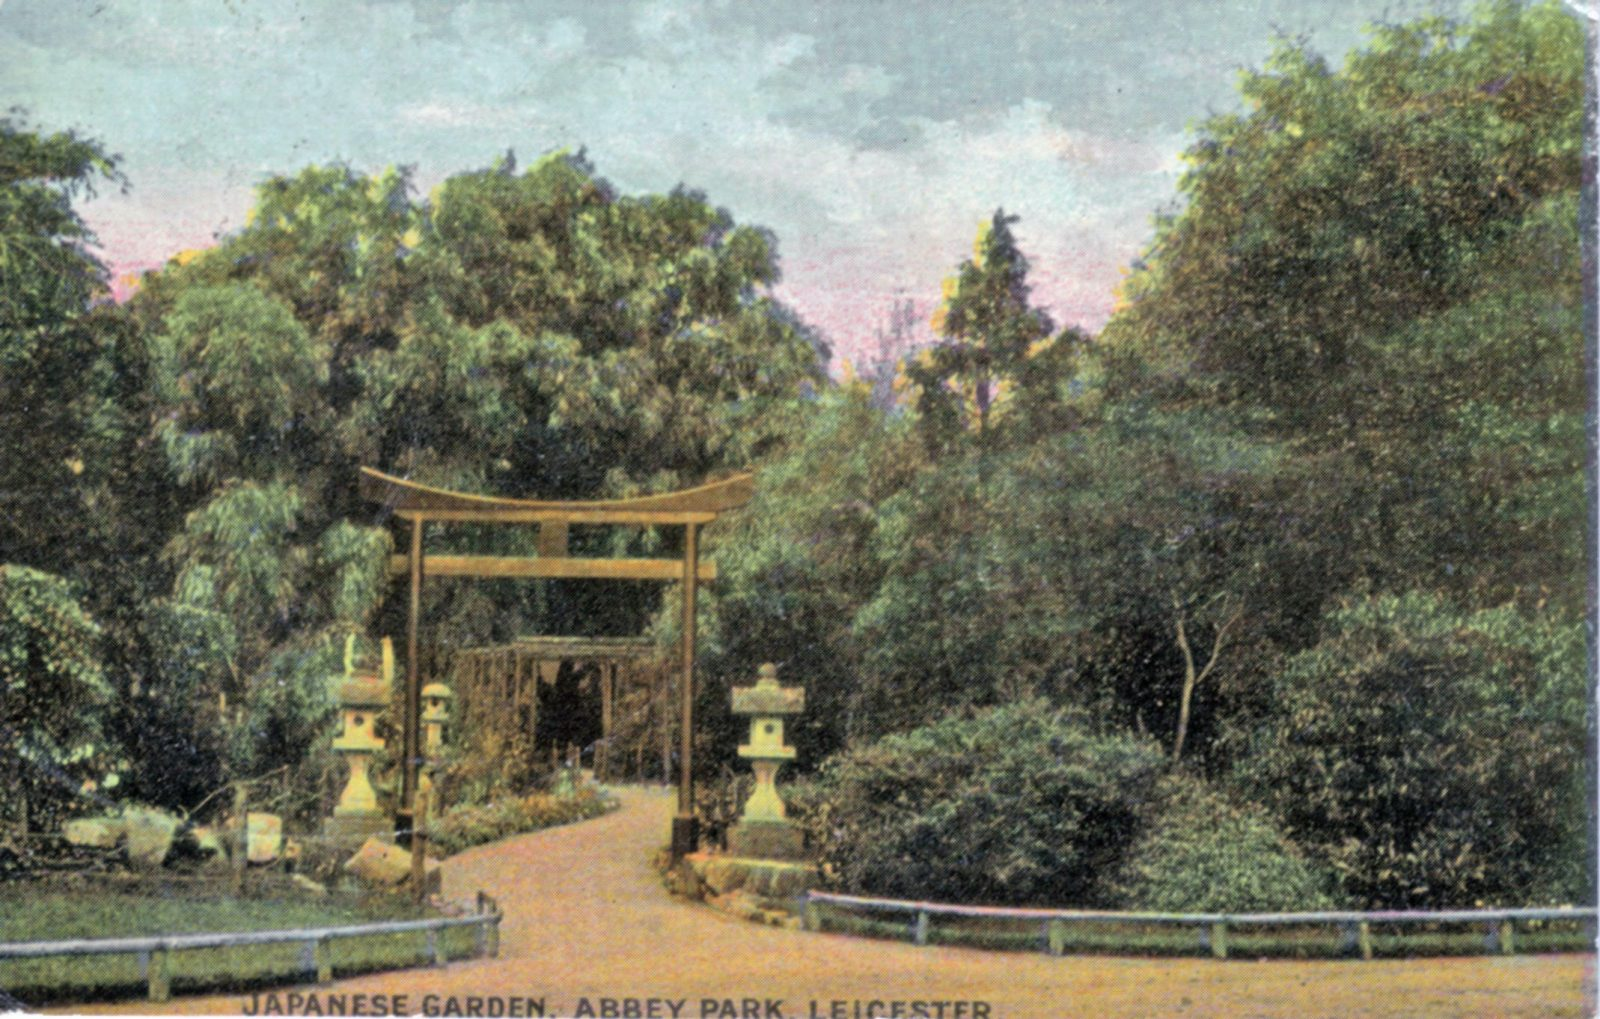 Abbey Park, Leicester. 1901-1920: Entrance to Japanese Garden. Franked 1910 (File:1023)